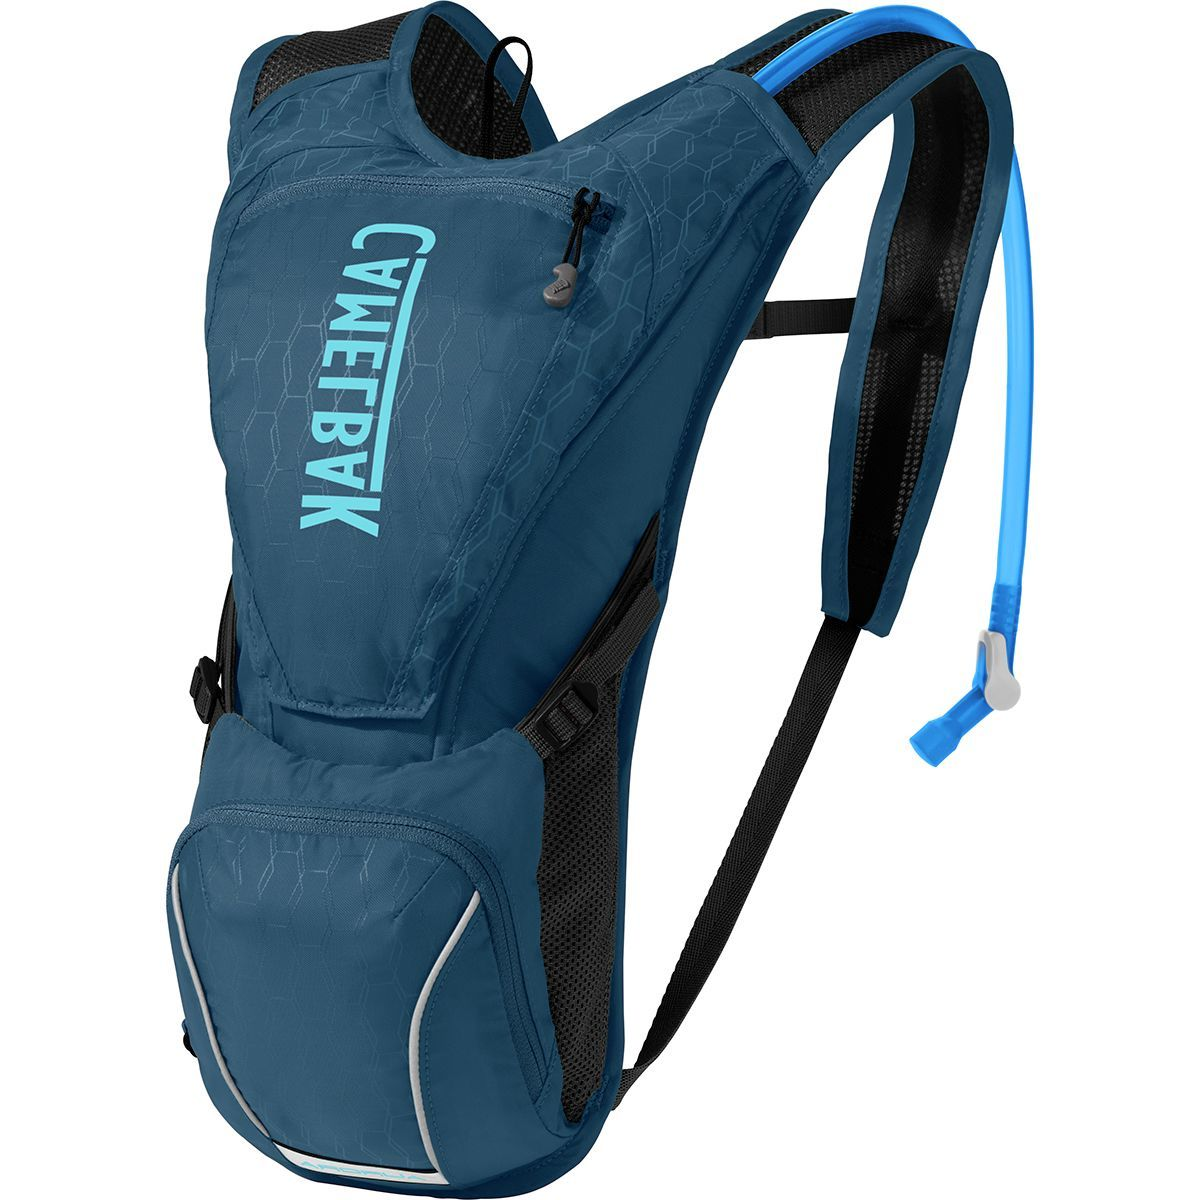 CamelBak Aurora 5L Backpack - Women's